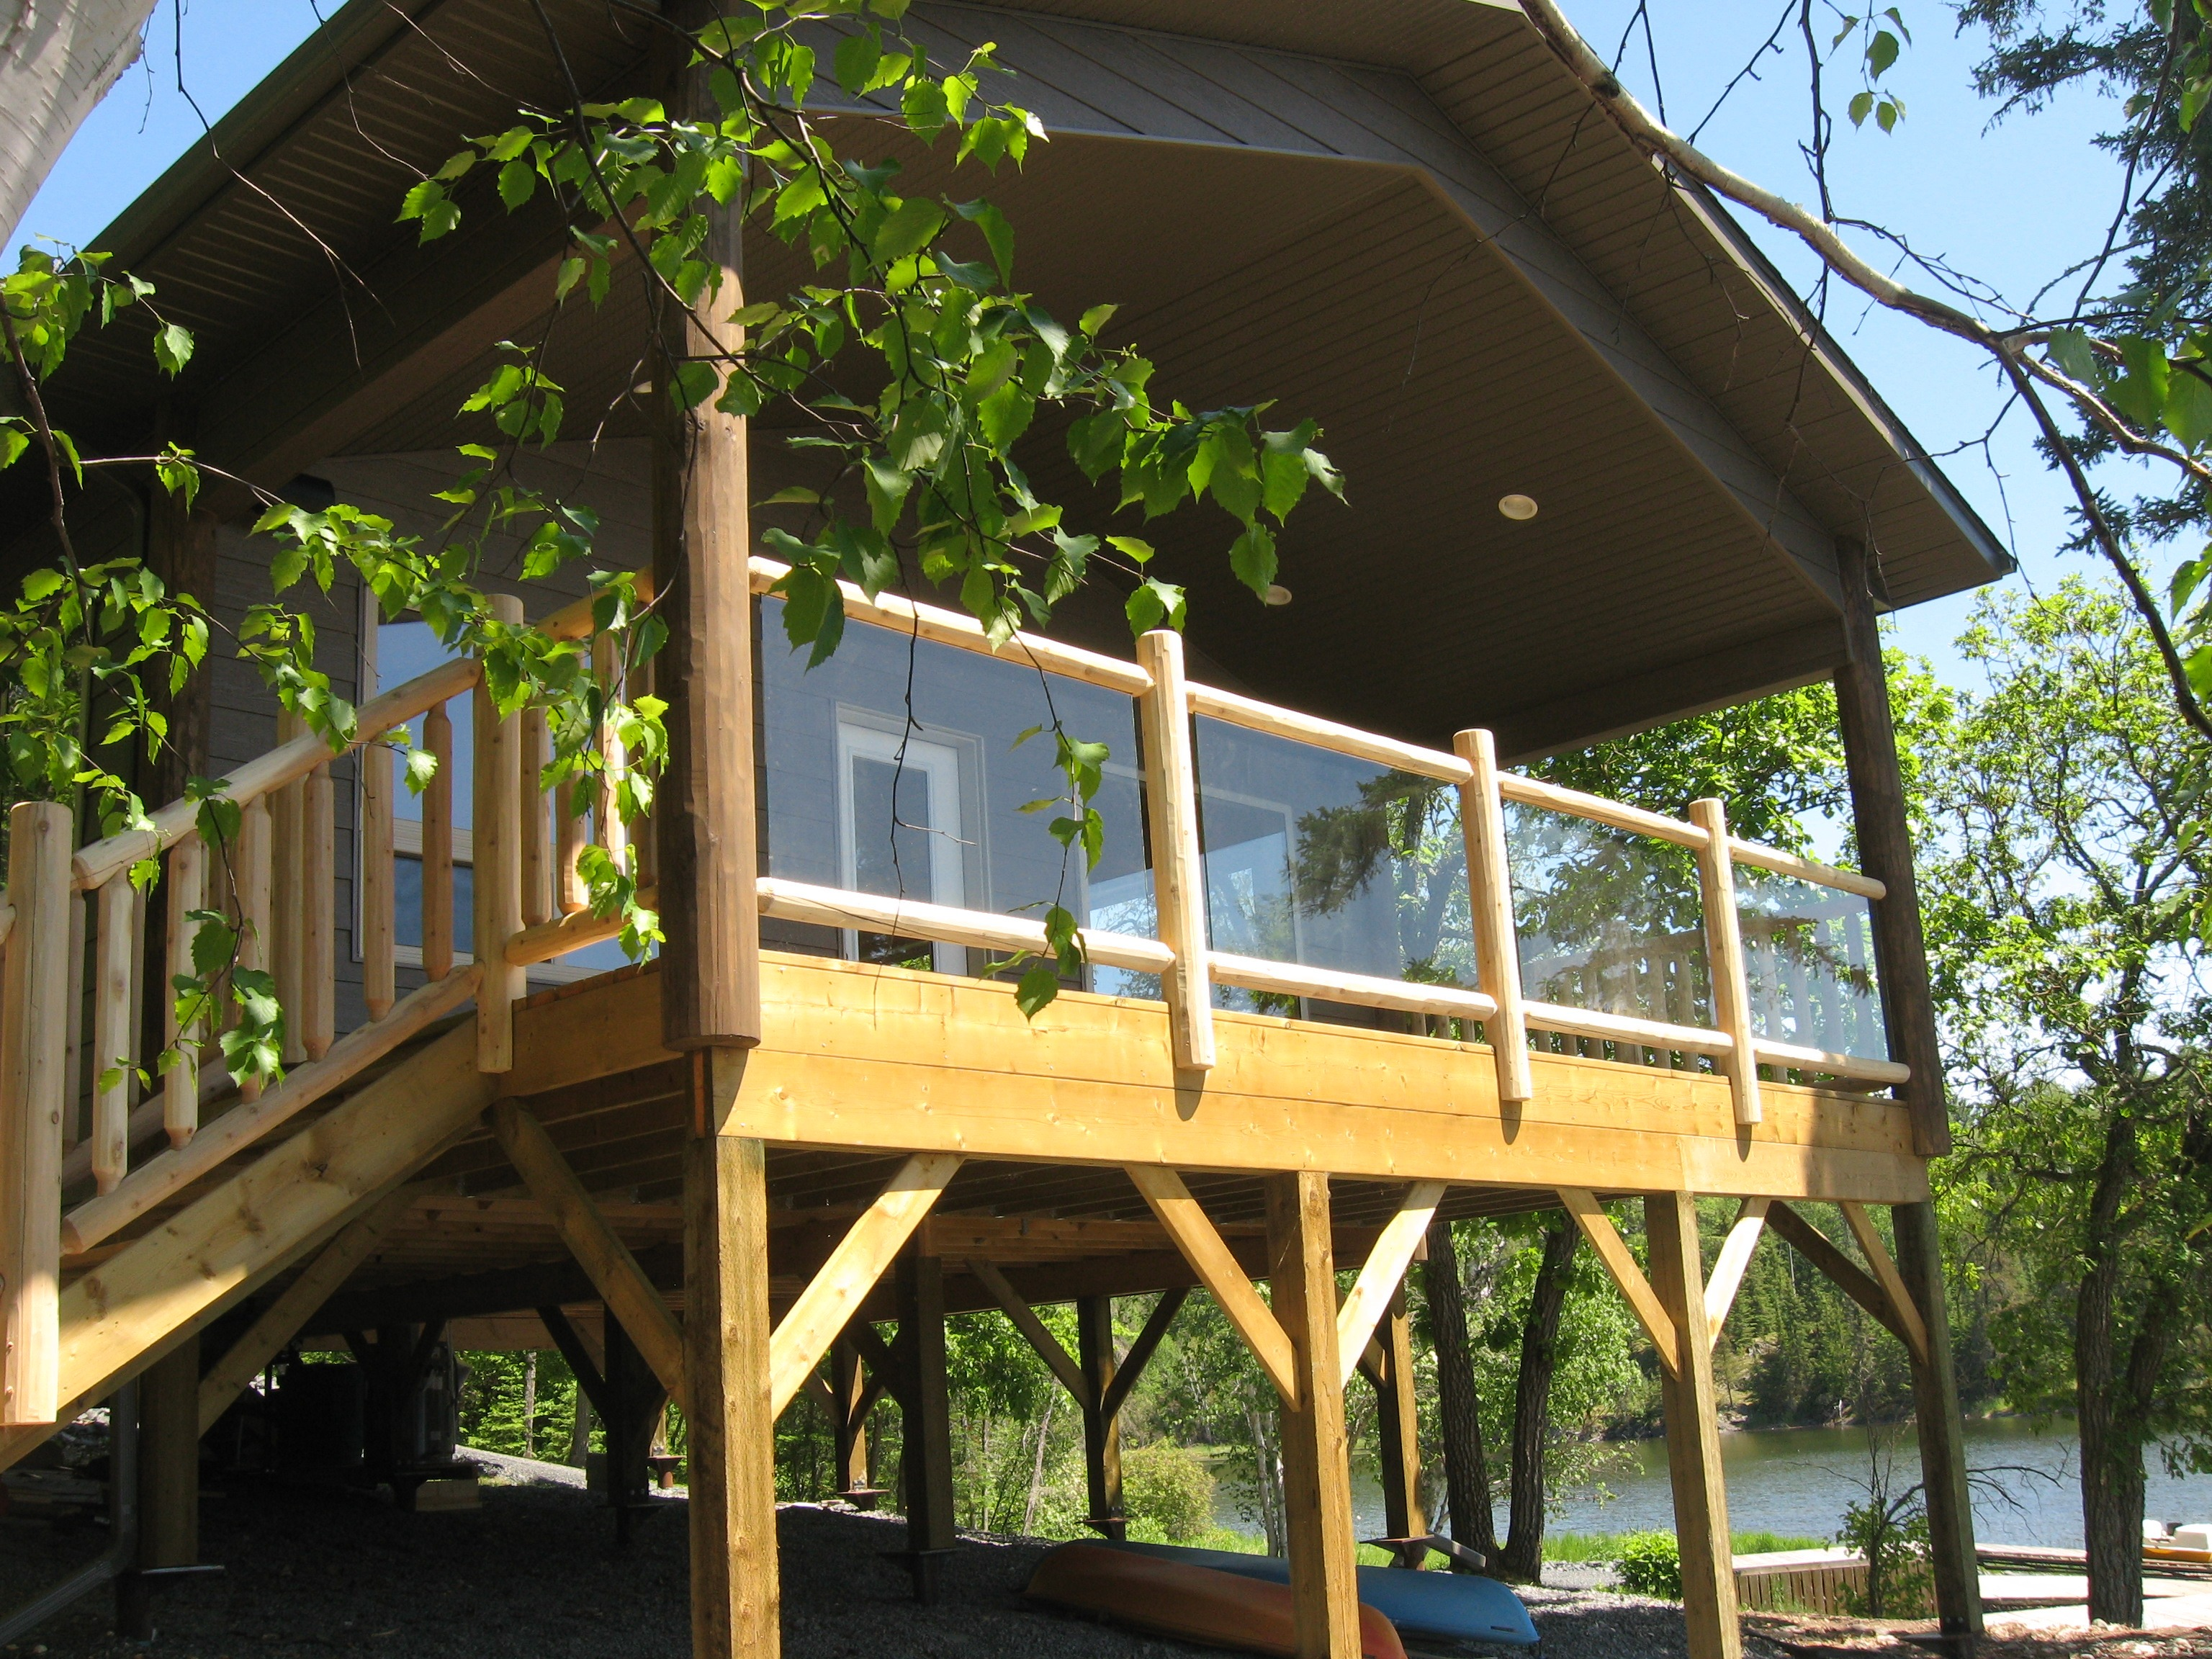 Wooden Railings with Glass Panels - Ryan's Rustic Railings